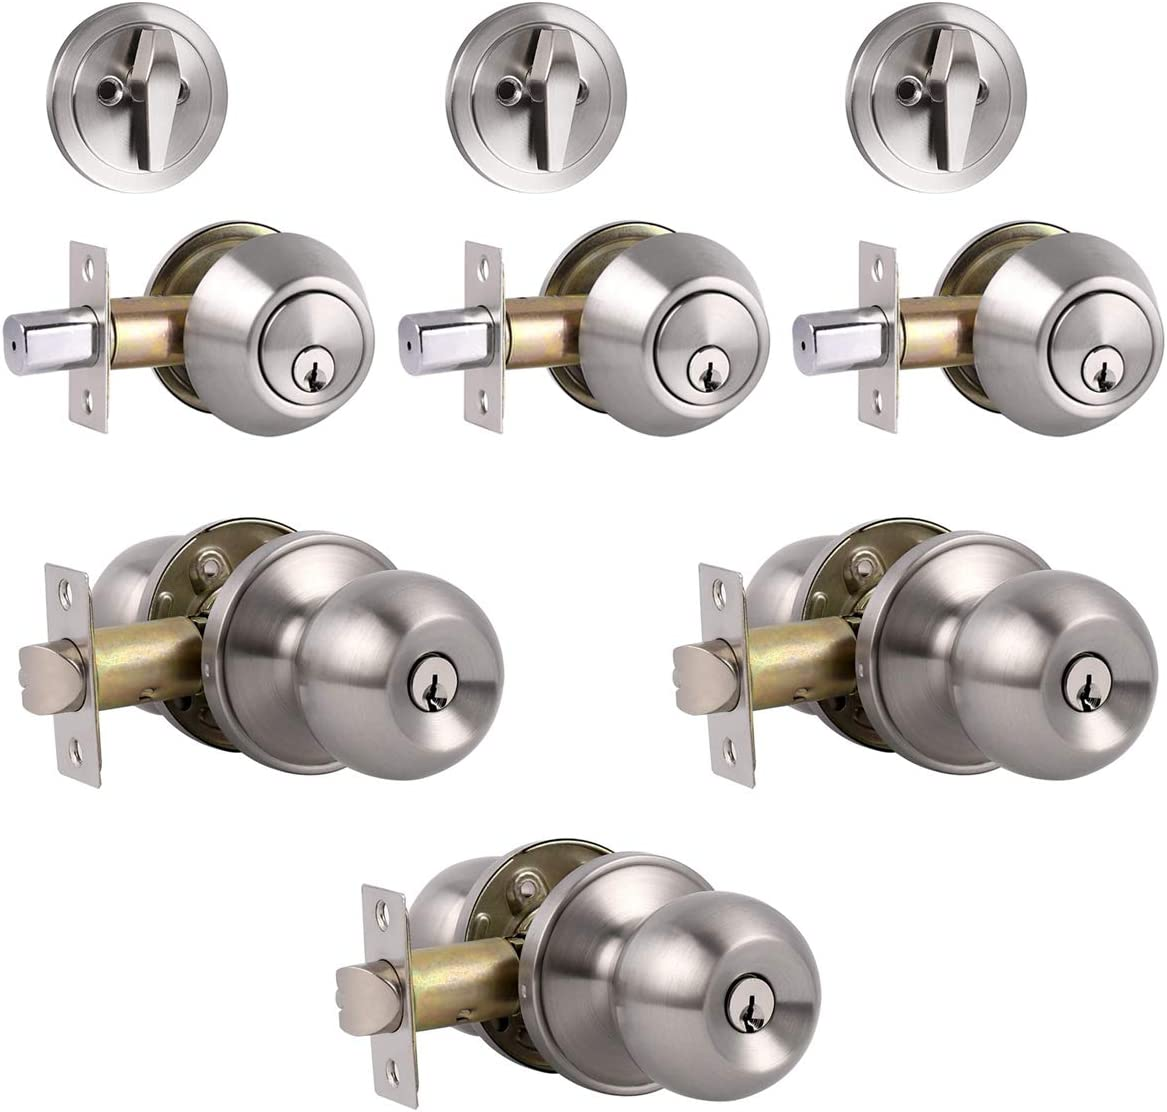 3 Pack Keyed Alike Entry Door Knobs and Single Cylinder Deadbolt Lock Combo Set Security for Entrance and Front Door with Classic Satin Nickel Finish